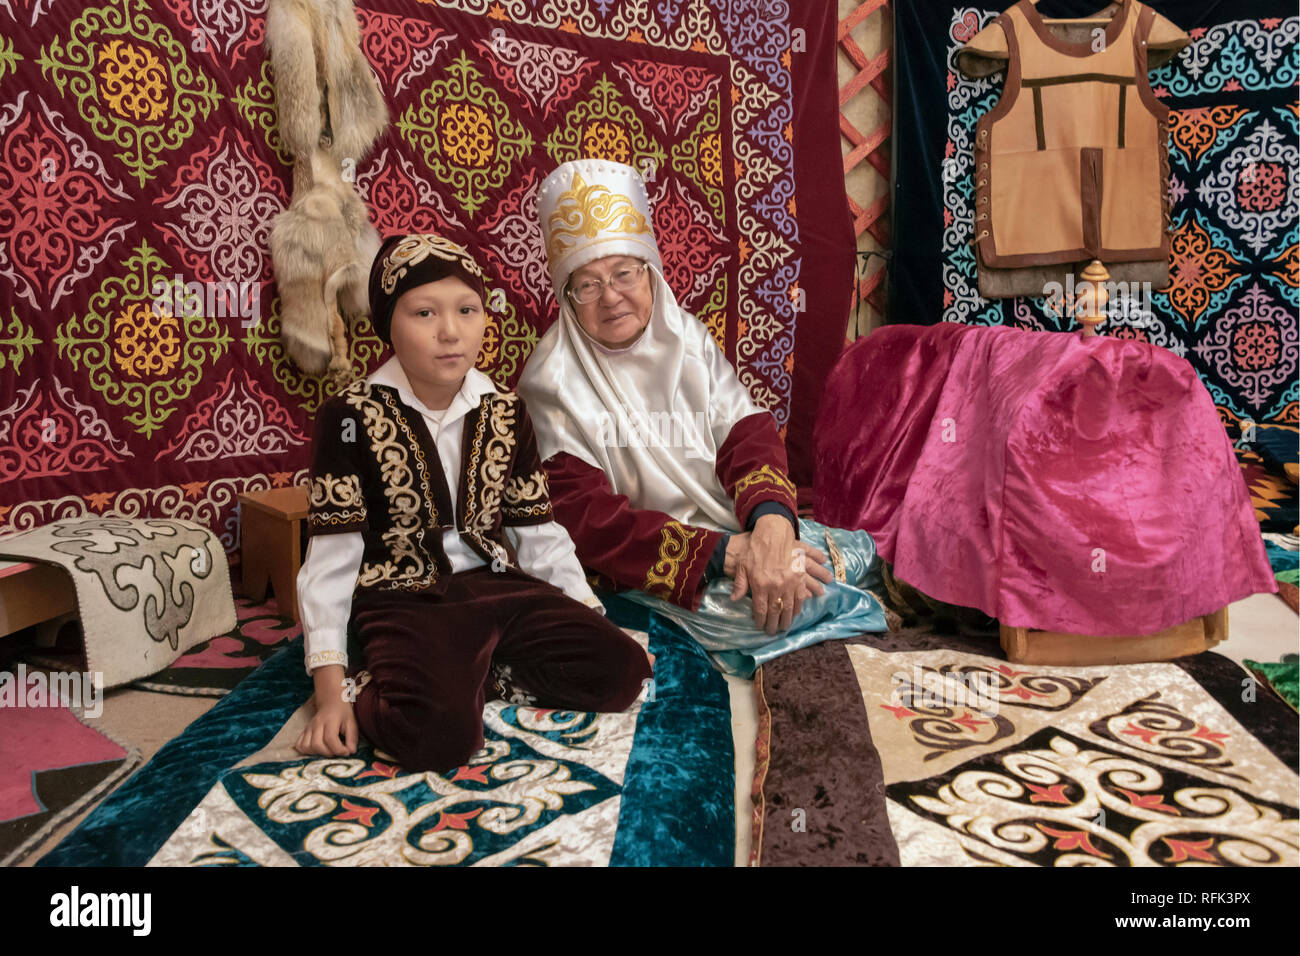 Grandmother and grandson in traditional attire inside a yurt, Almaty, Kazakhstan - Stock Image